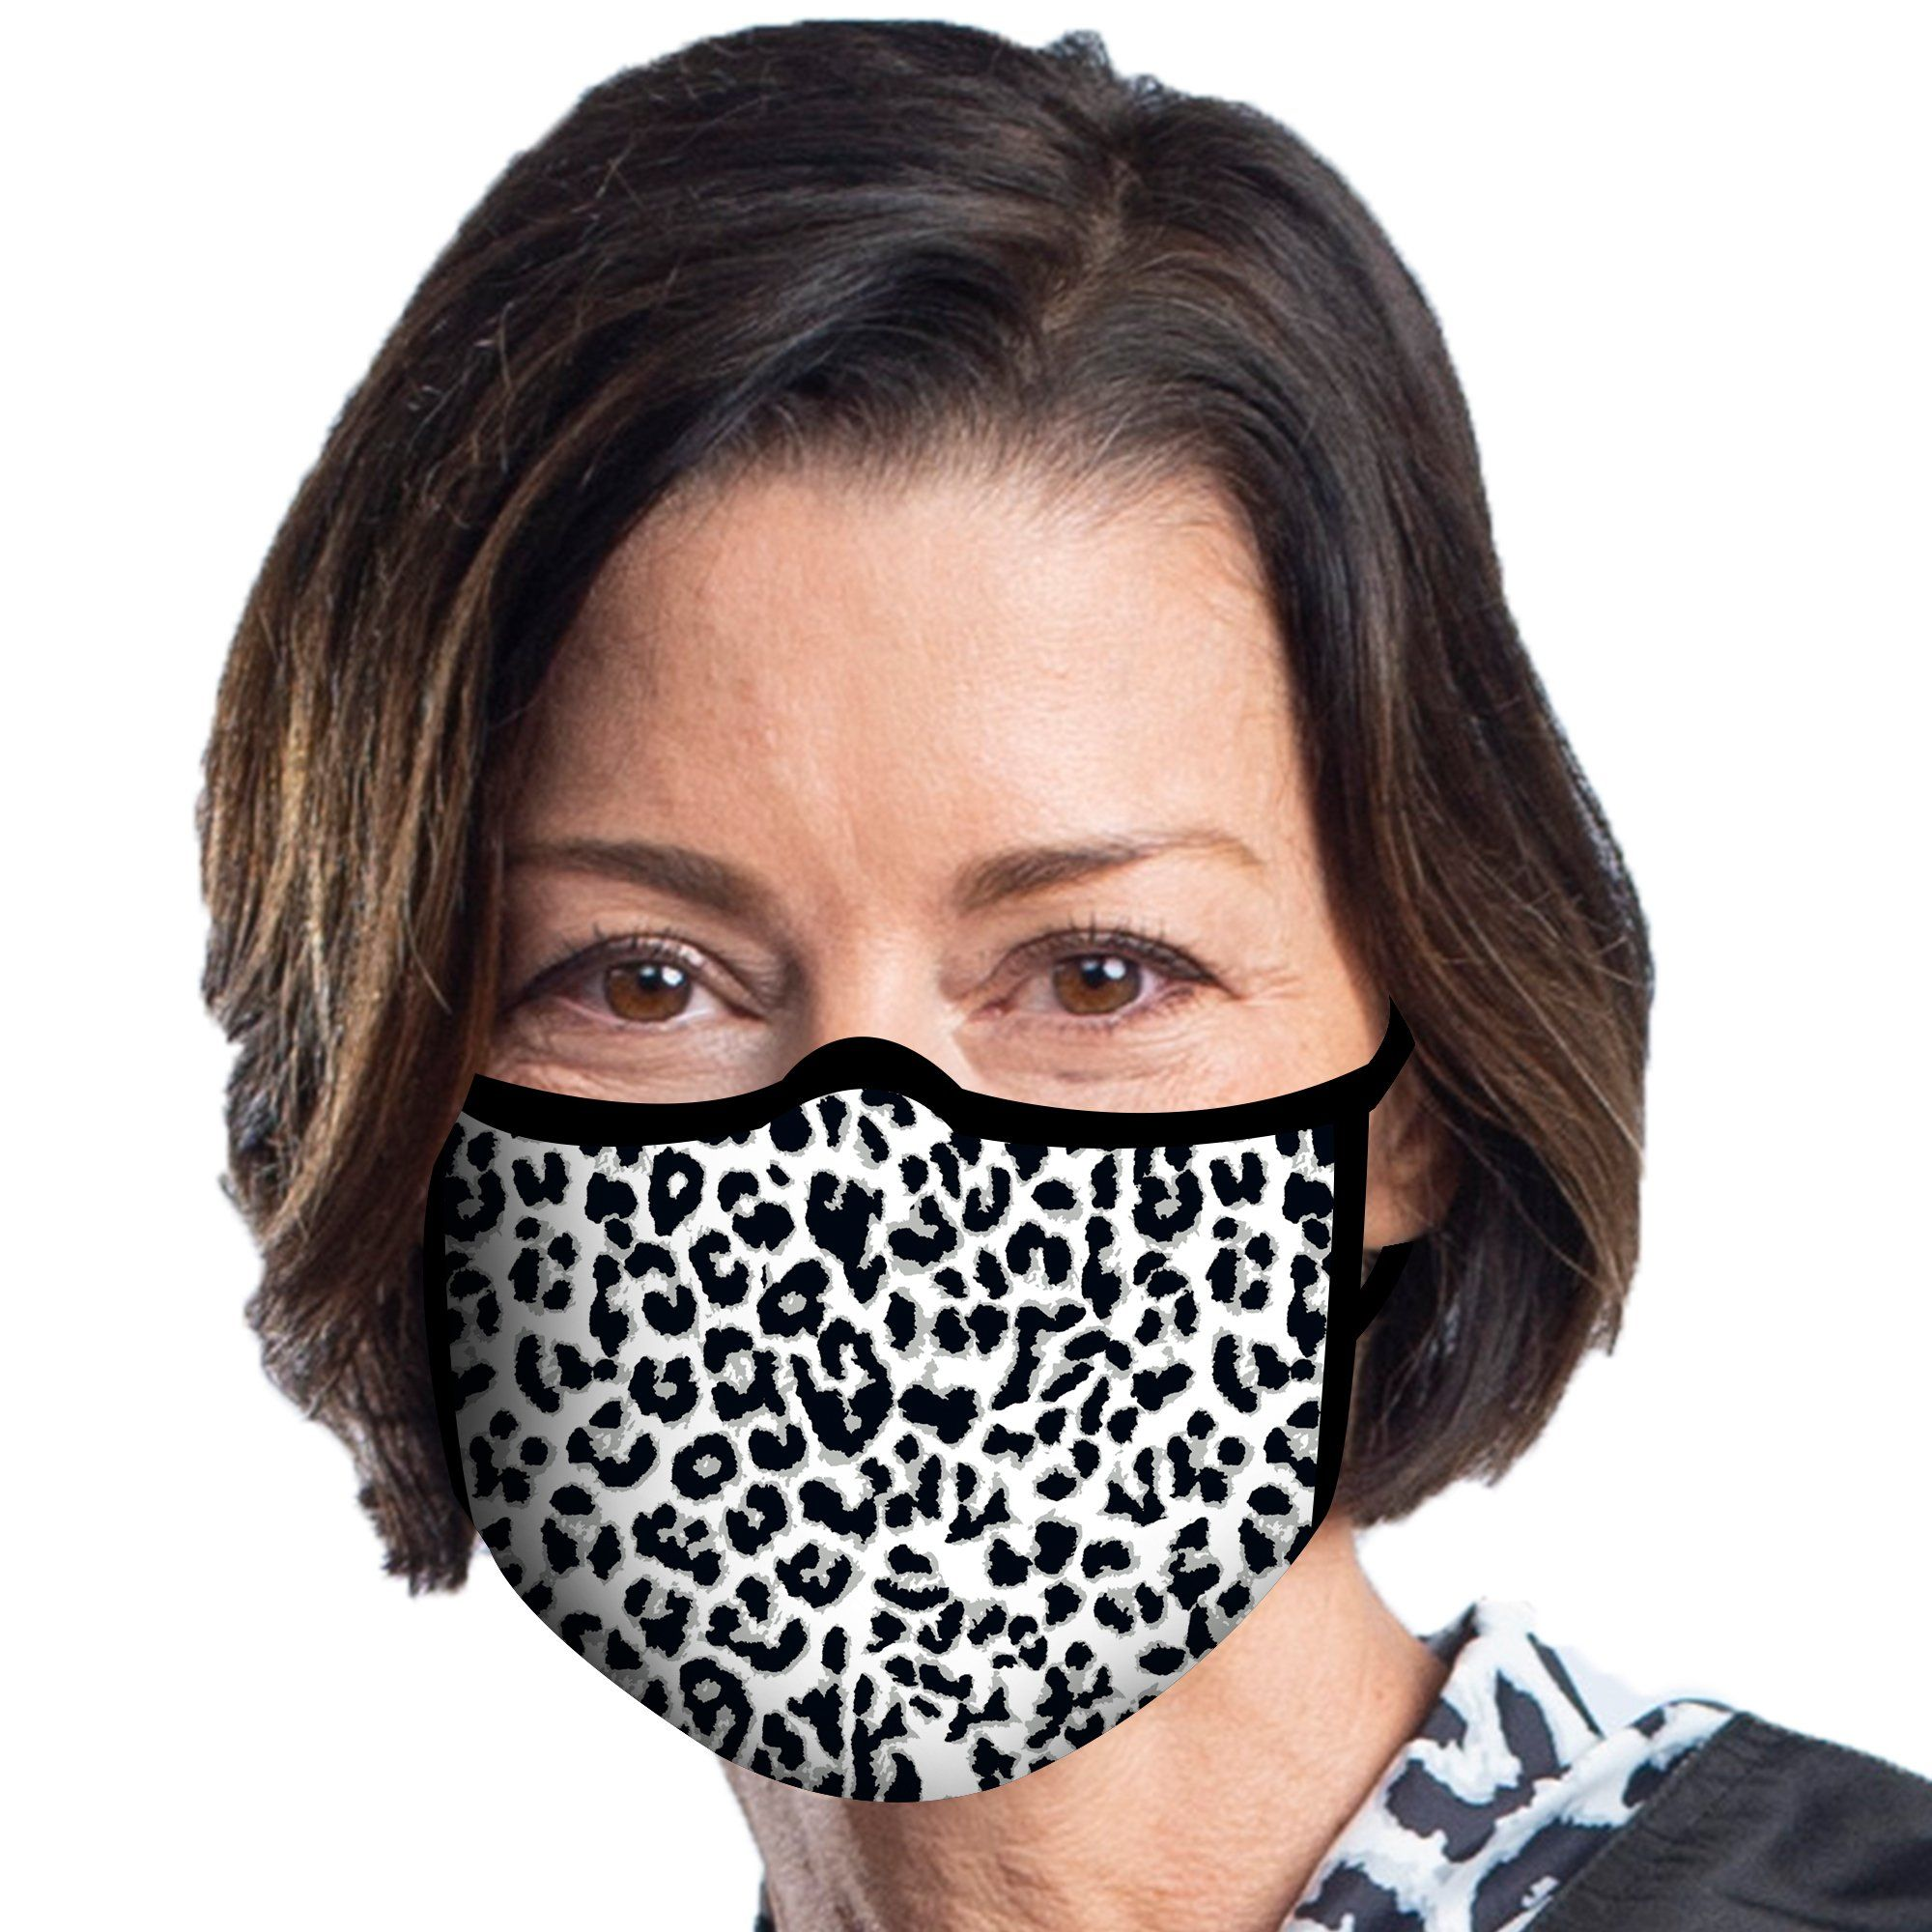 Woman wearing a Black & White Animal Print Reusable Fabric Face Mask.